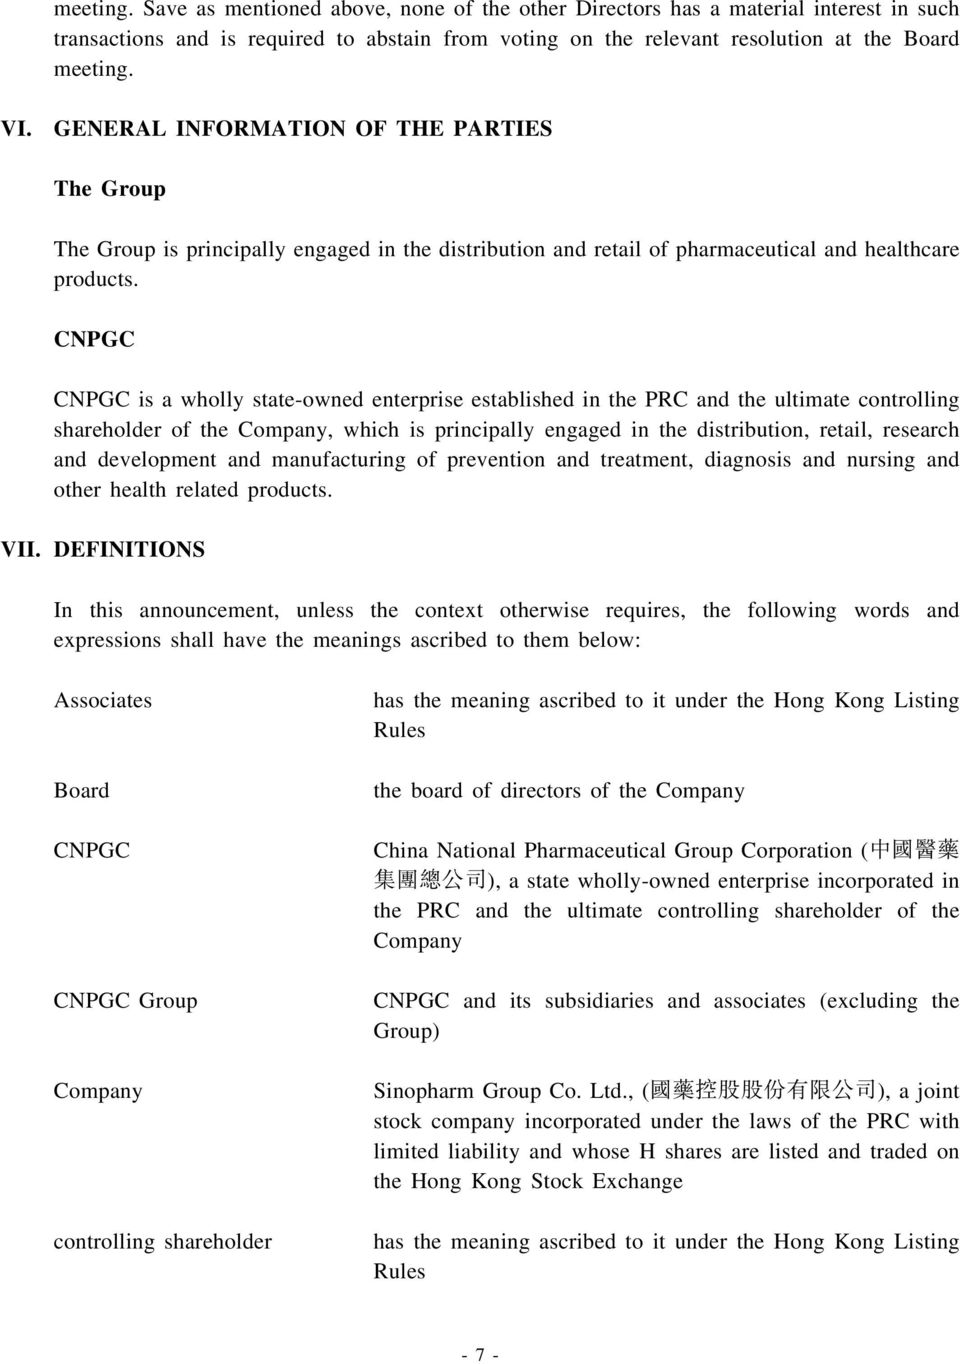 CNPGC CNPGC is a wholly state-owned enterprise established in the PRC and the ultimate controlling shareholder of the Company, which is principally engaged in the distribution, retail, research and